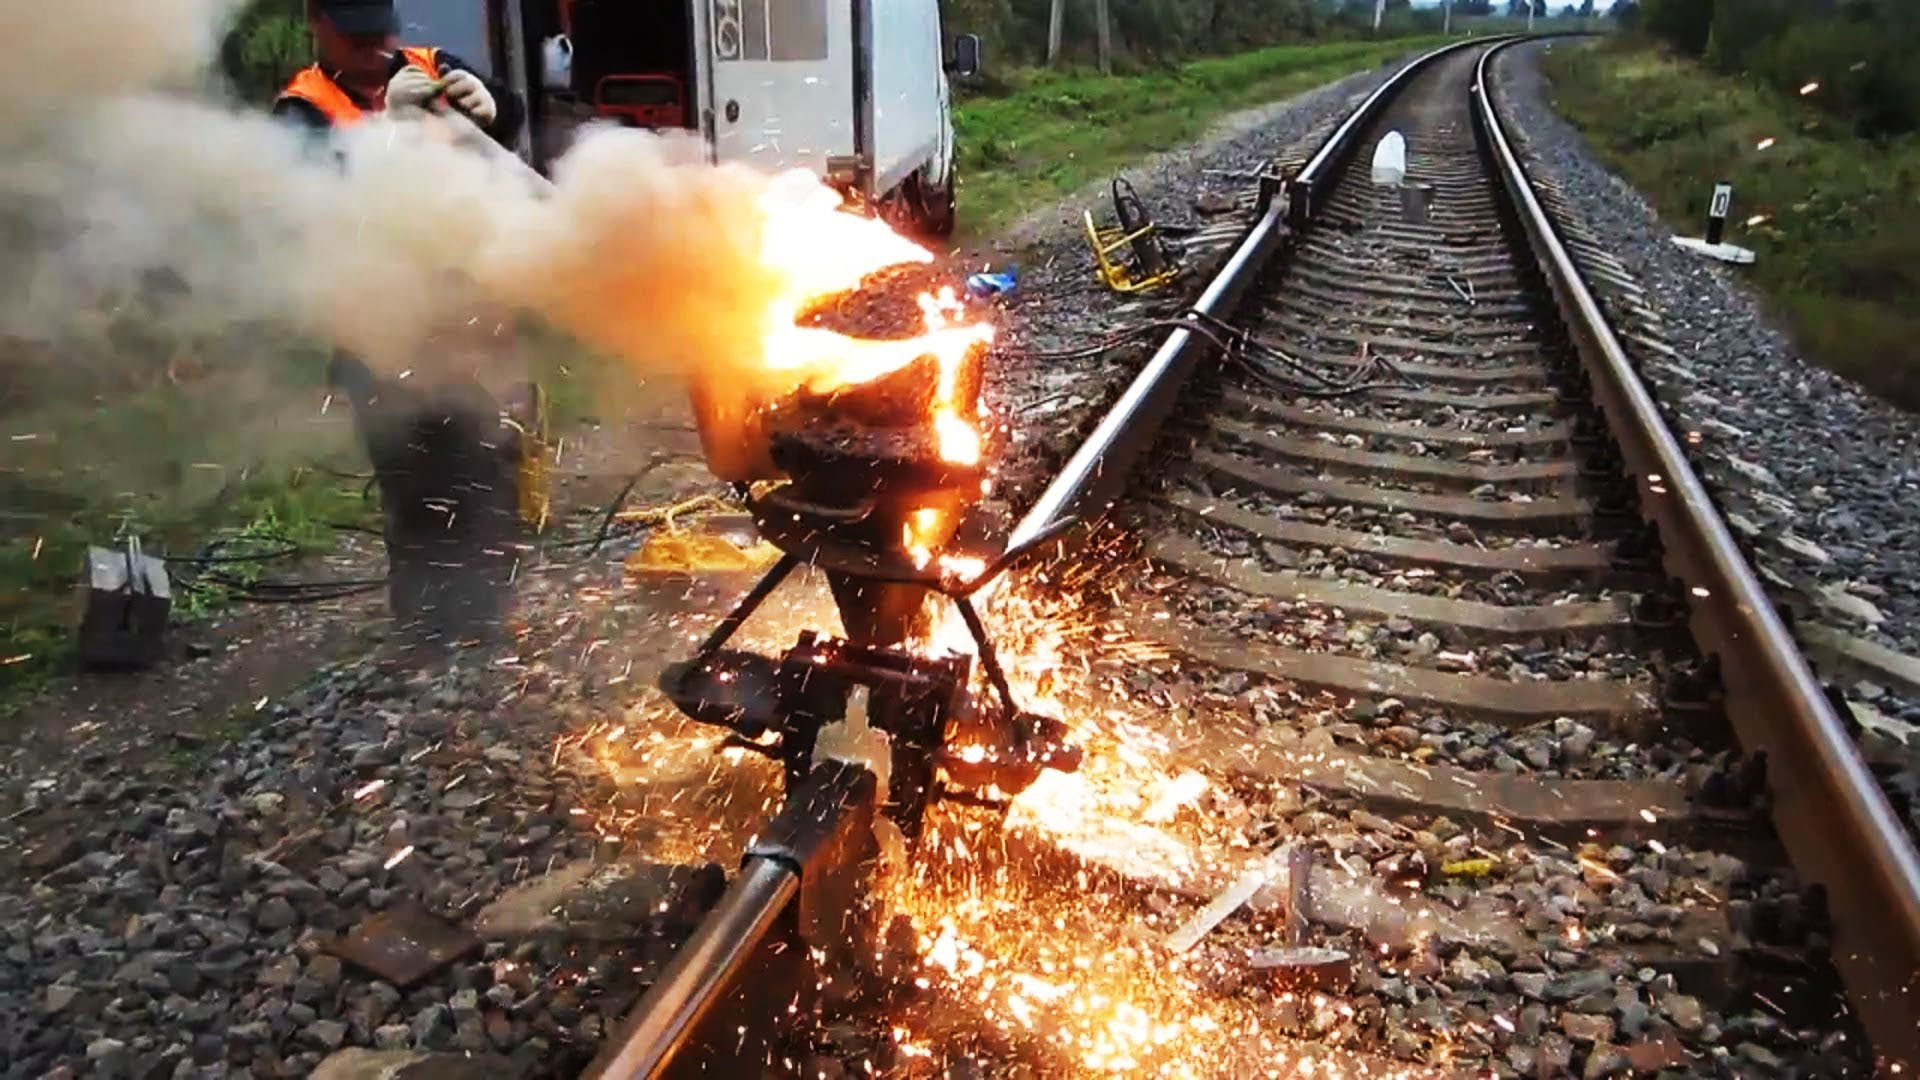 Railway thermite welding reaction railroad Siberia! | Vinemoments